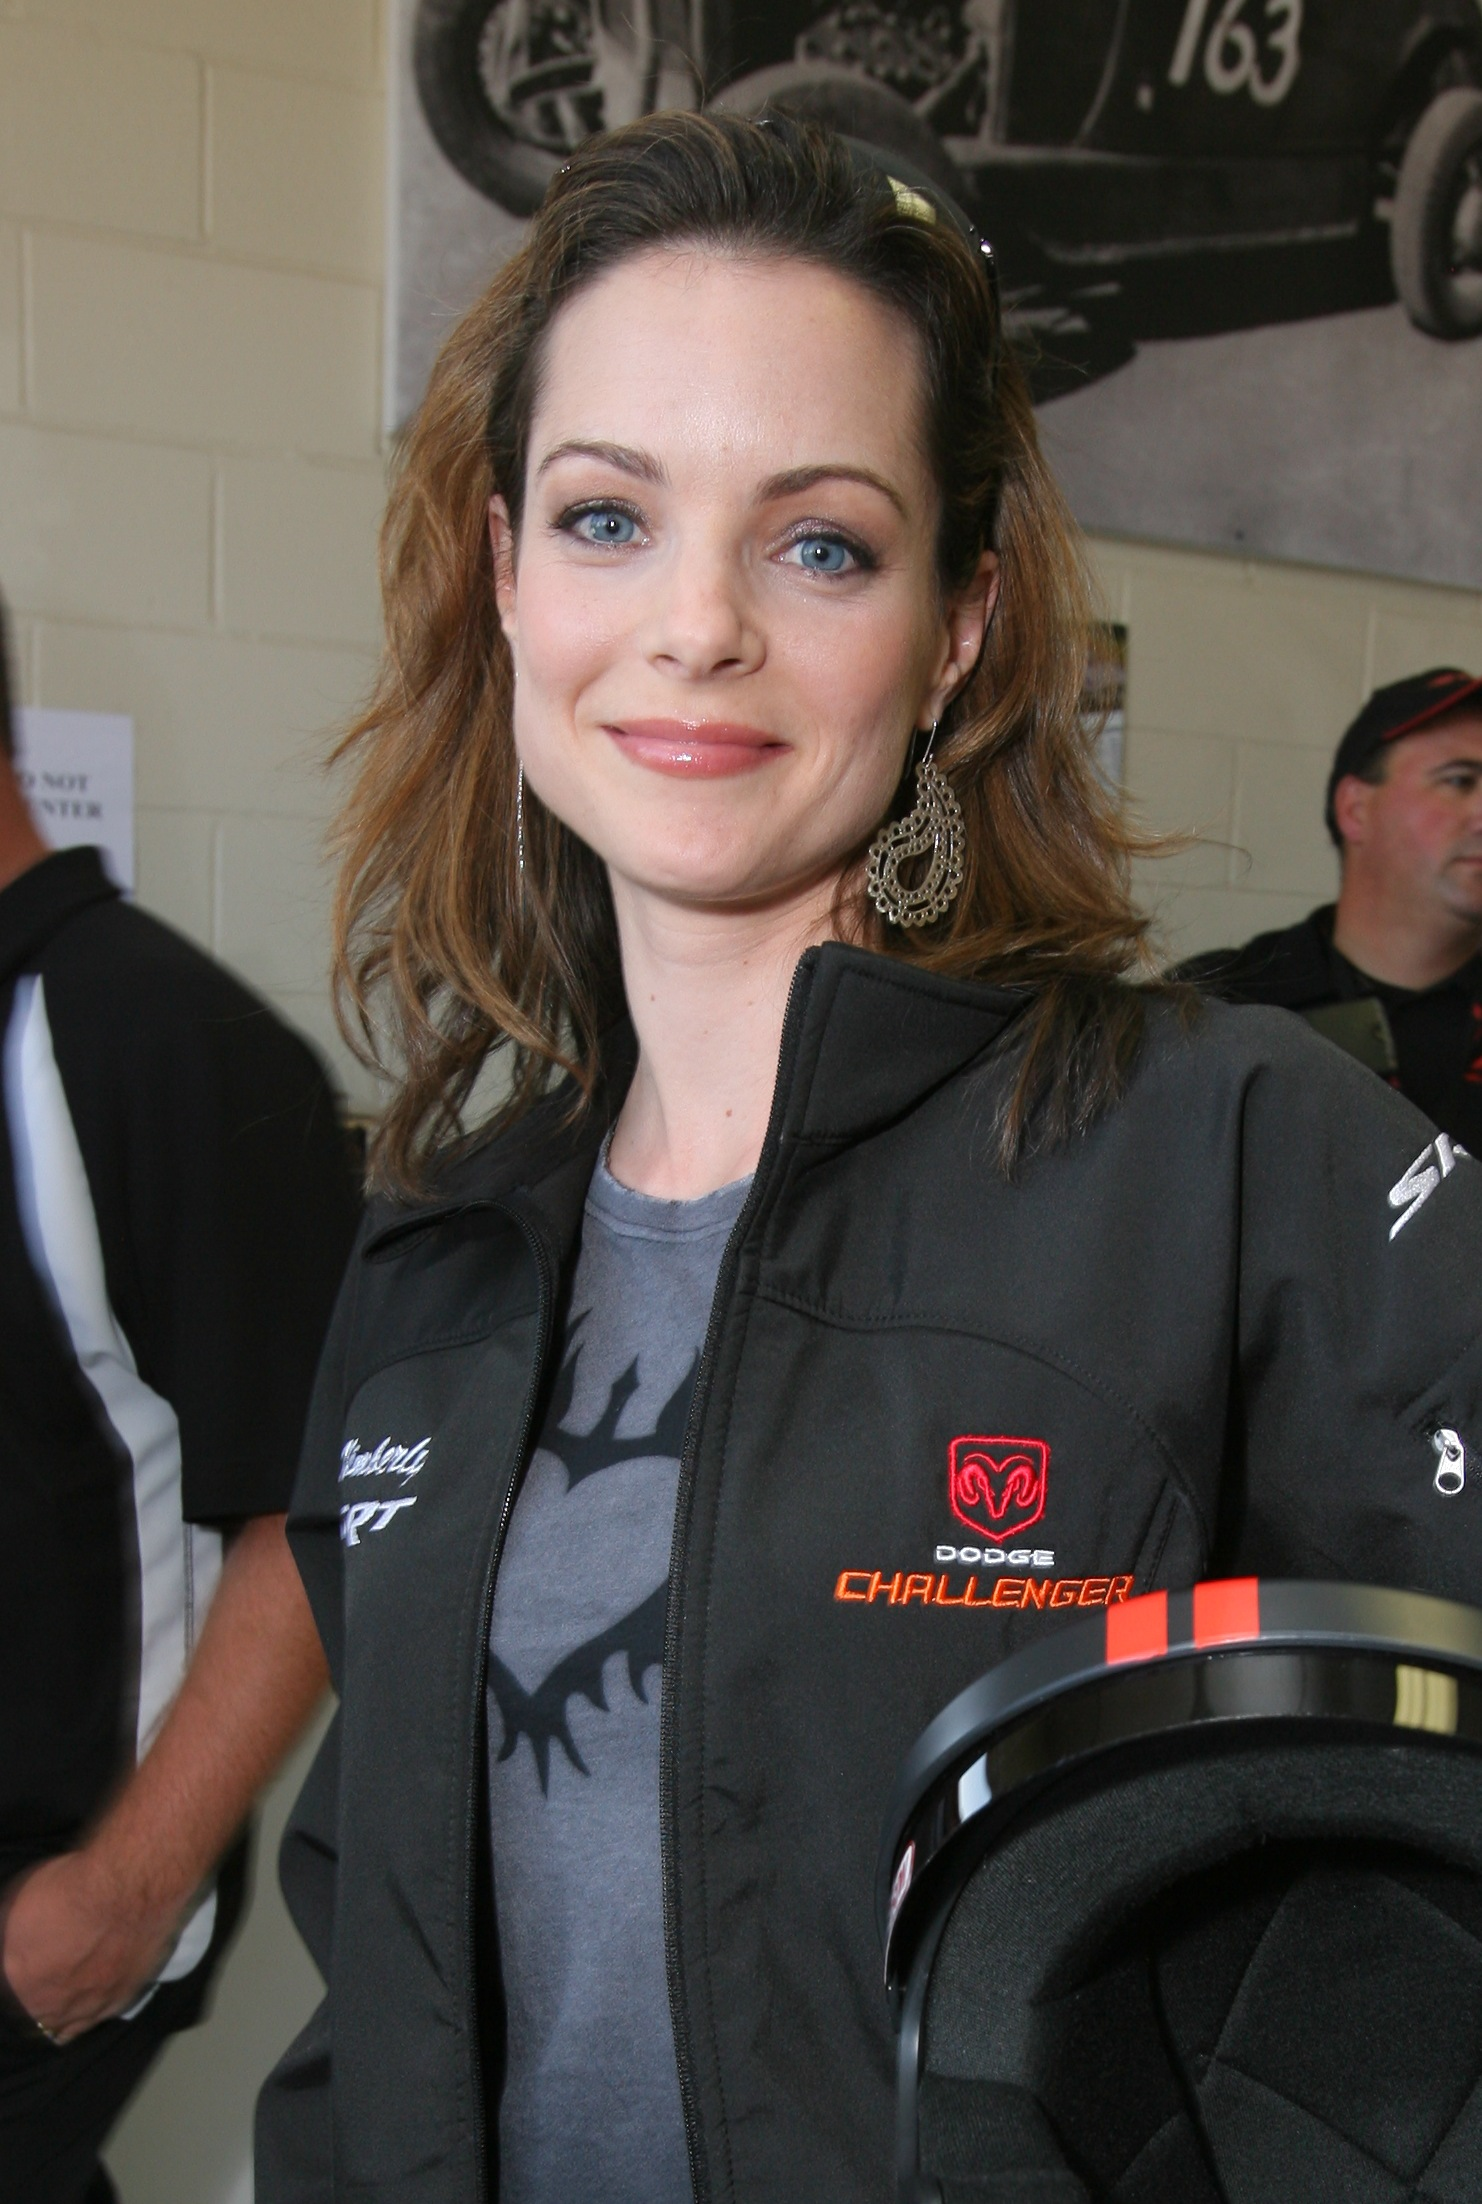 Kimberly Williams Paisley - Images Colection